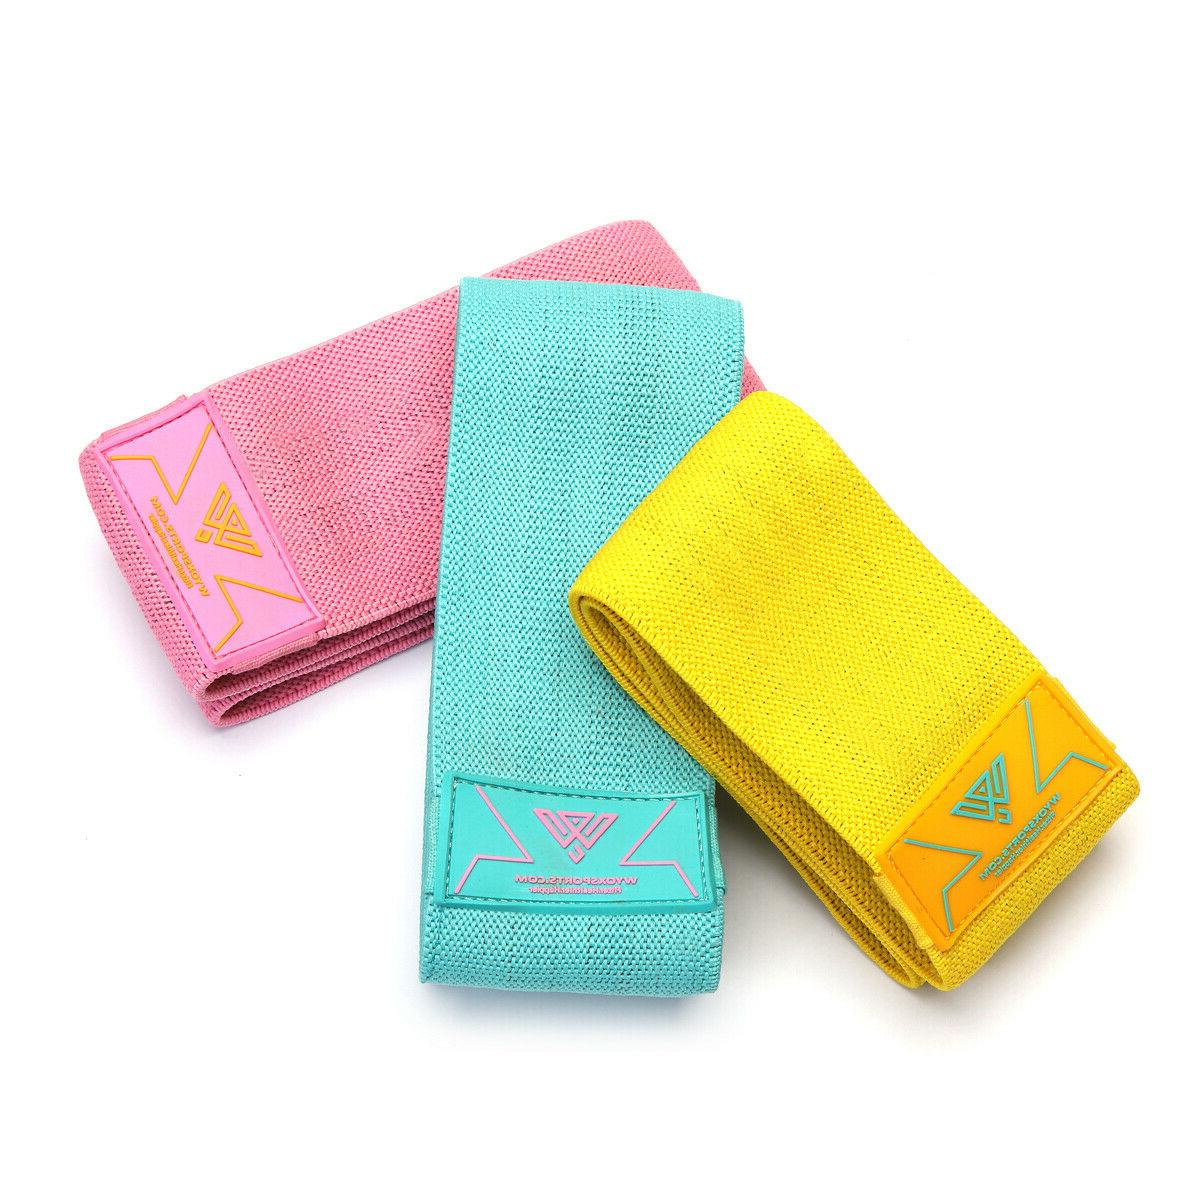 Cloth Bands of 3 Gym